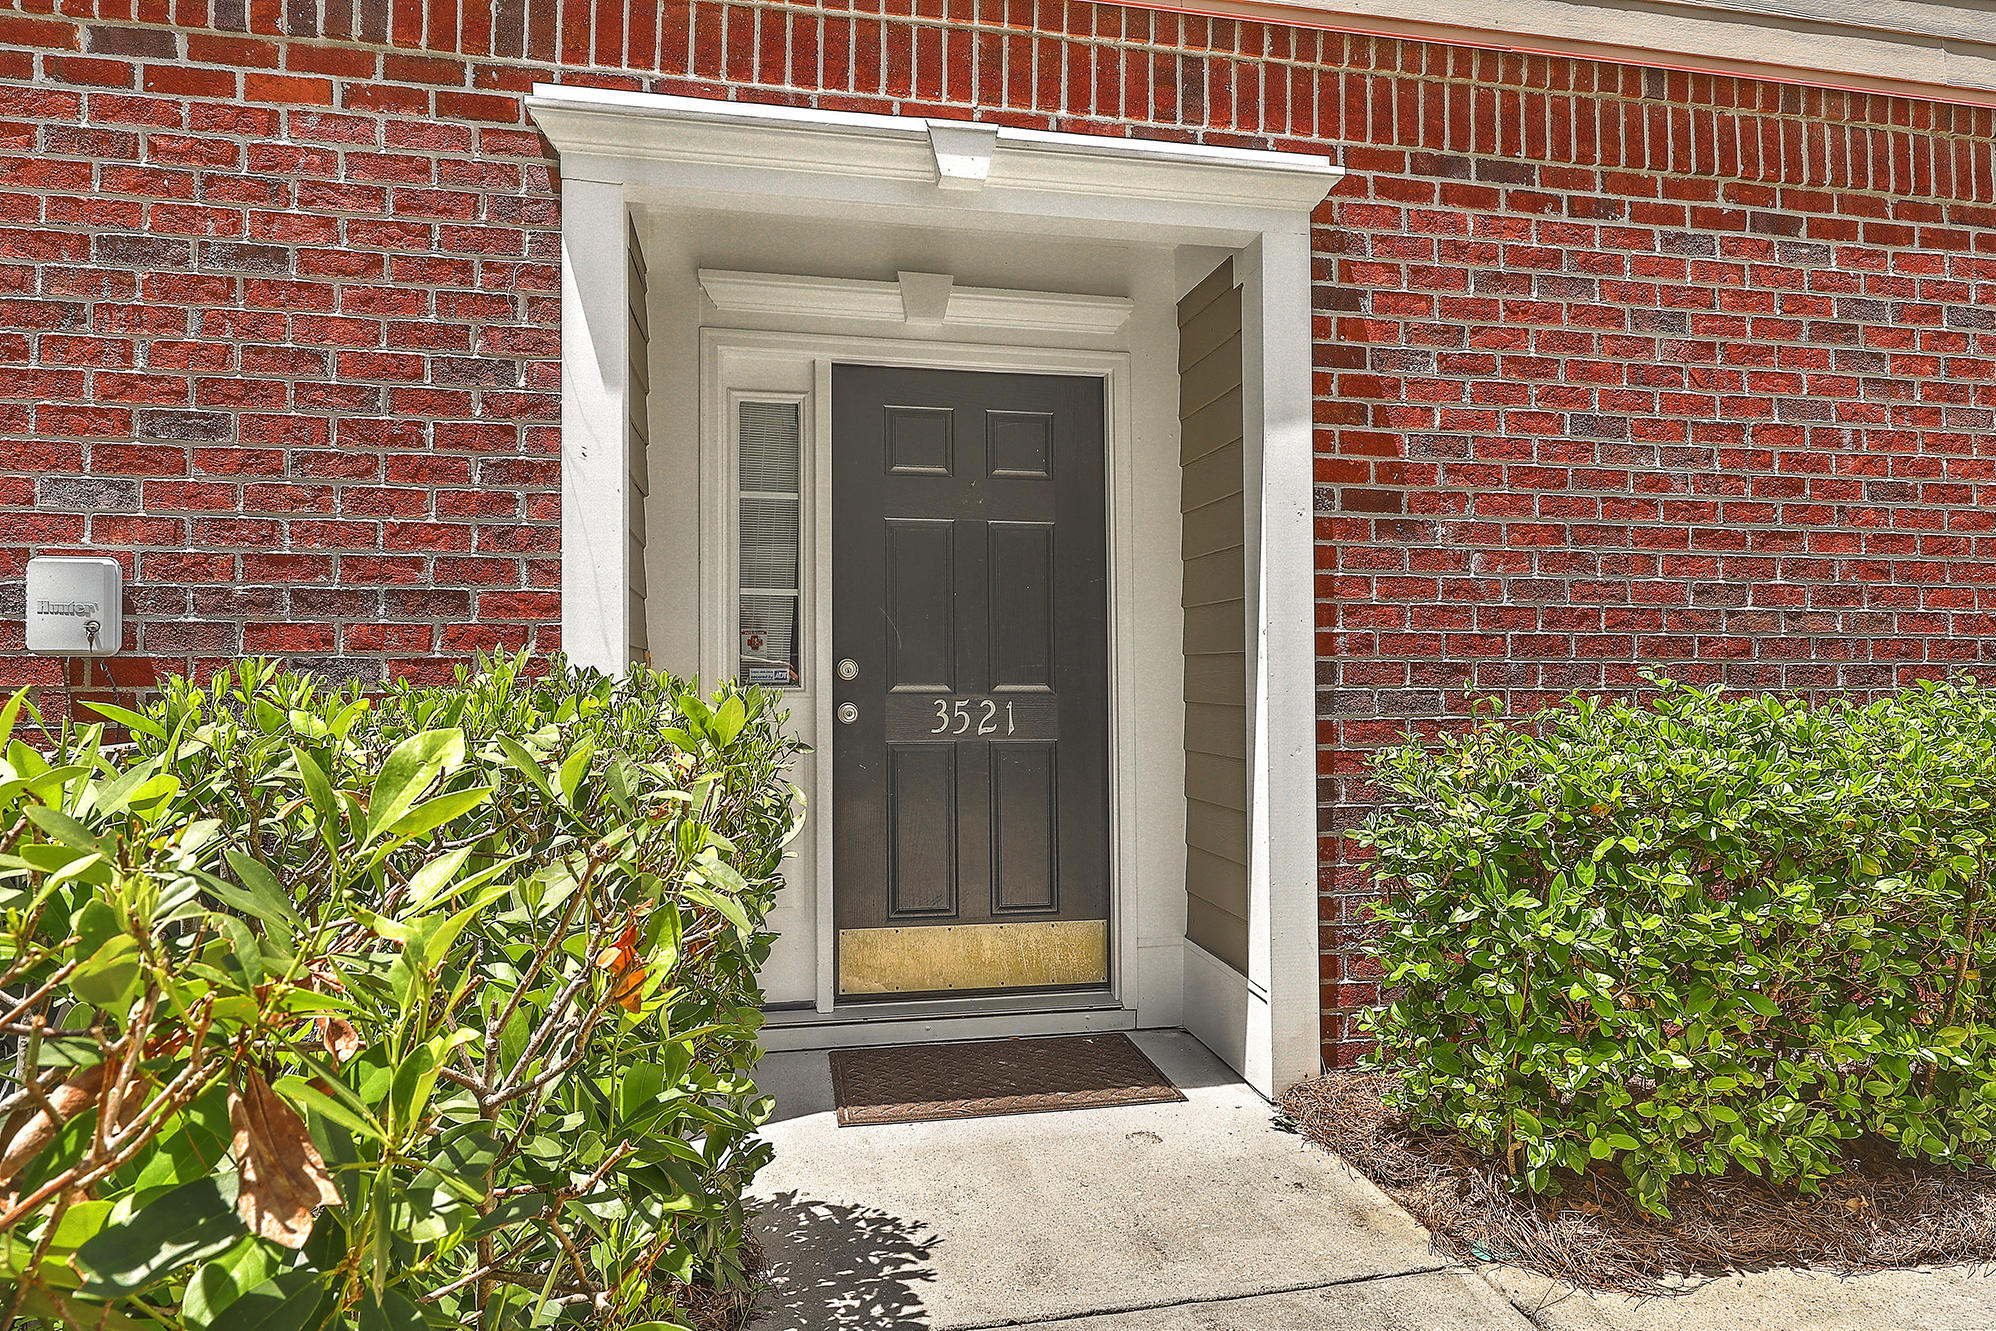 Kensington at Park West Homes For Sale - 3521 Claremont, Mount Pleasant, SC - 28